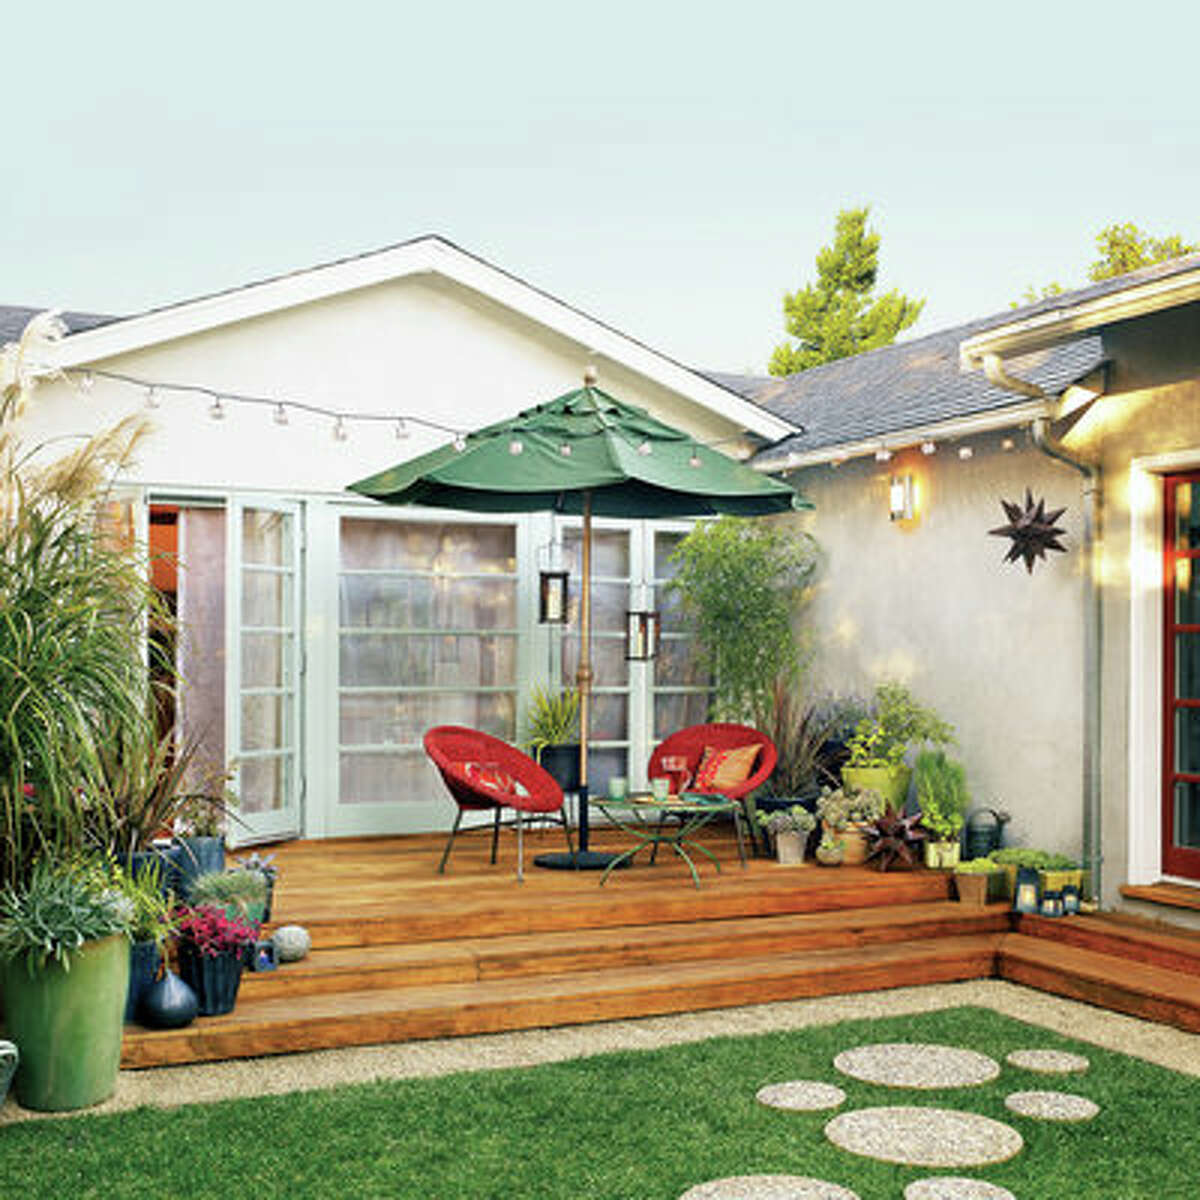 Small space update Creating a colorful outdoor living room from an unruly yard can seem intimidating. But by breaking down the process into a series of manageable tasks, busy parents Trina and Mark Whiteley were able to refresh their small Palo Alto, CA deck. See how they did it